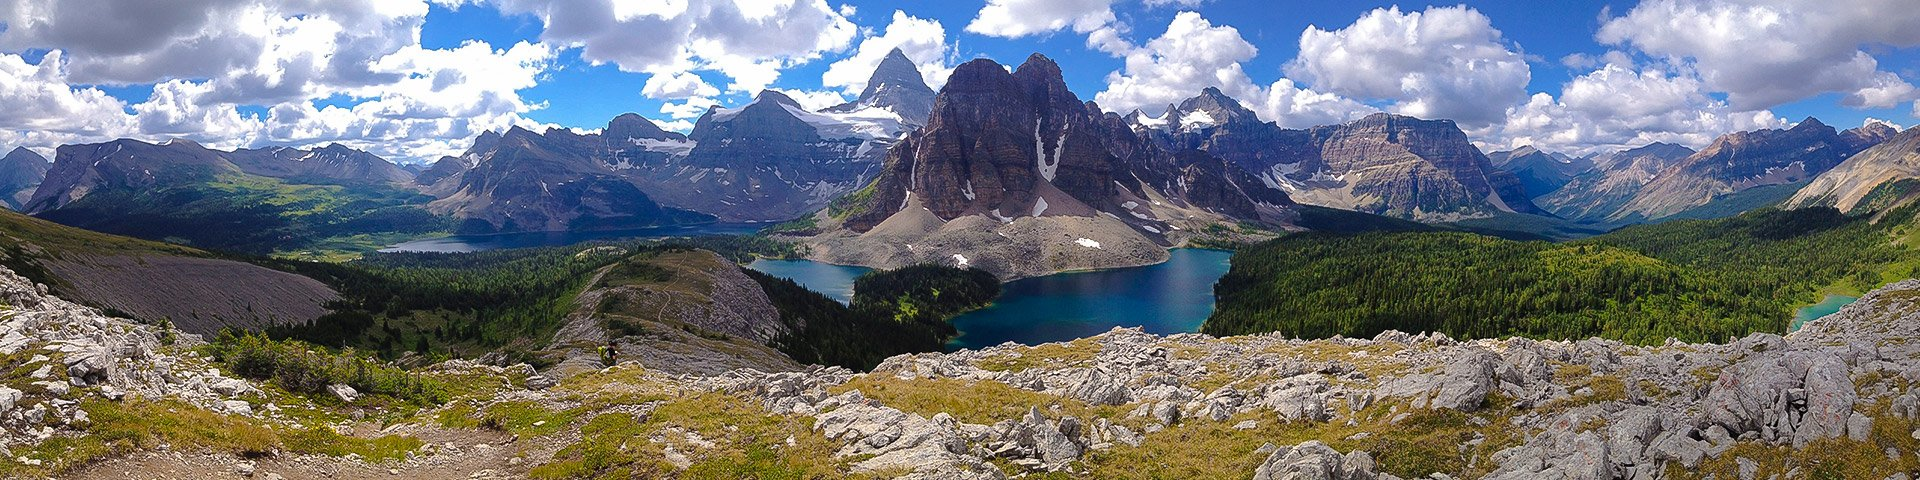 Panorama of Sunshine to Assiniboine backpacking trail in Banff National Park